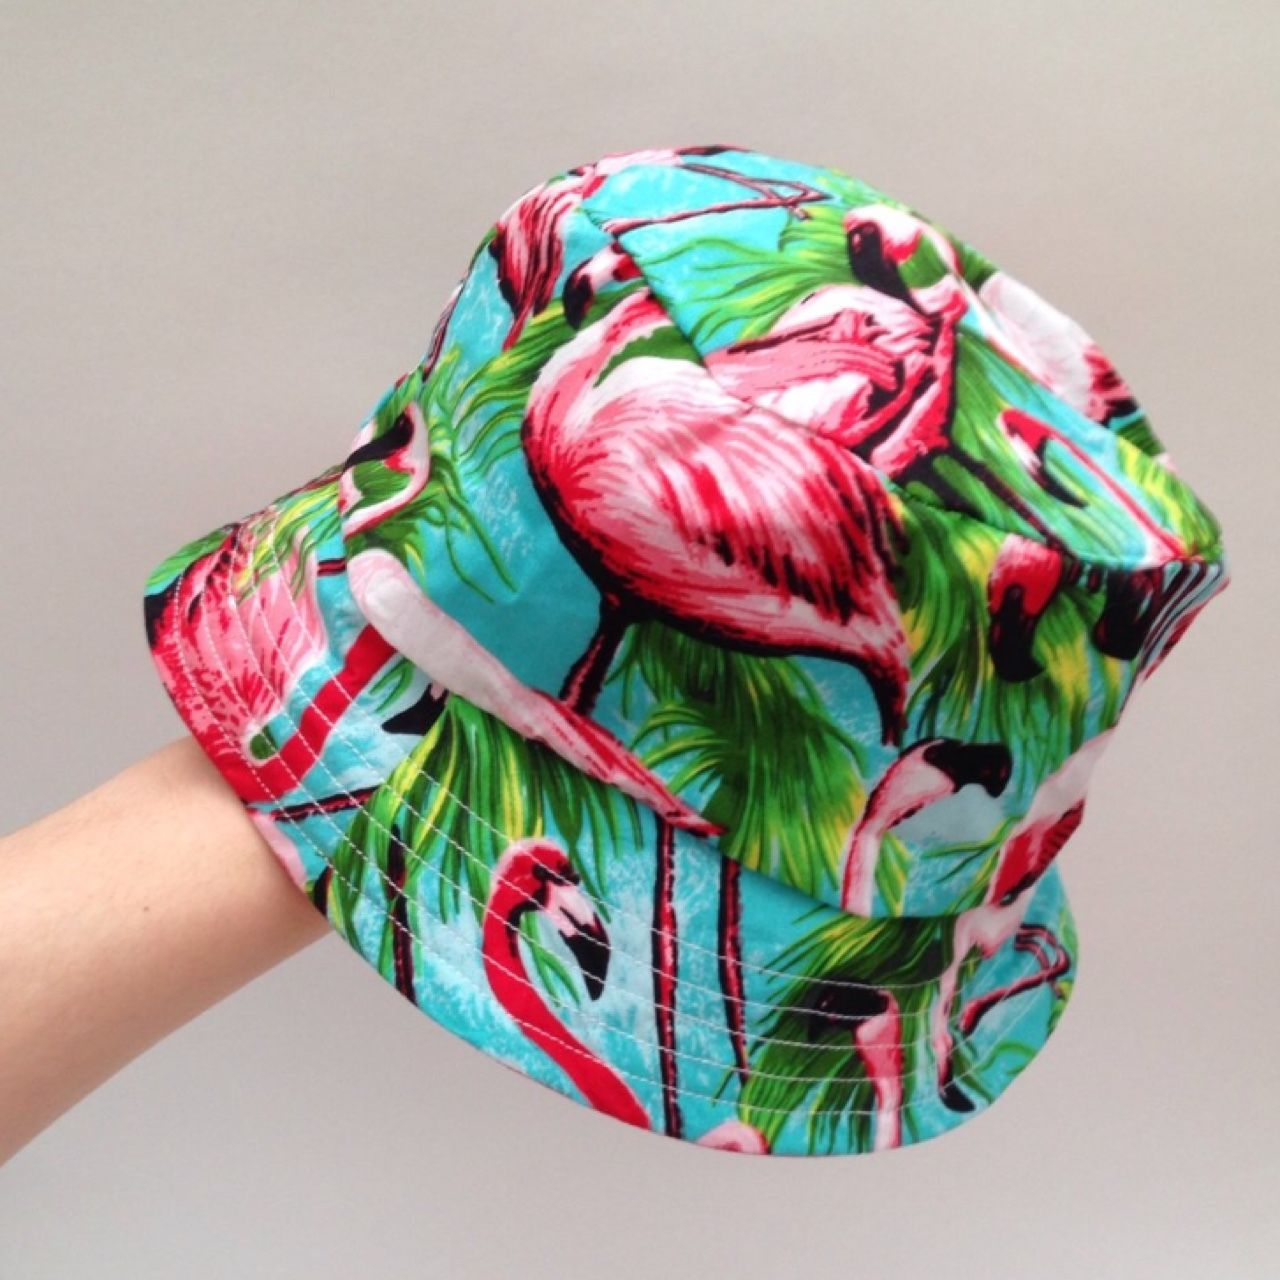 9060b21ecba7b6 Tropical flamingo bucket hat ~~~ Handmade by Chloe Louise! Perfect for  festivals & raves! ~~~ Max size 46cm round, will fit most people! ~~~ Lined  in pink ...